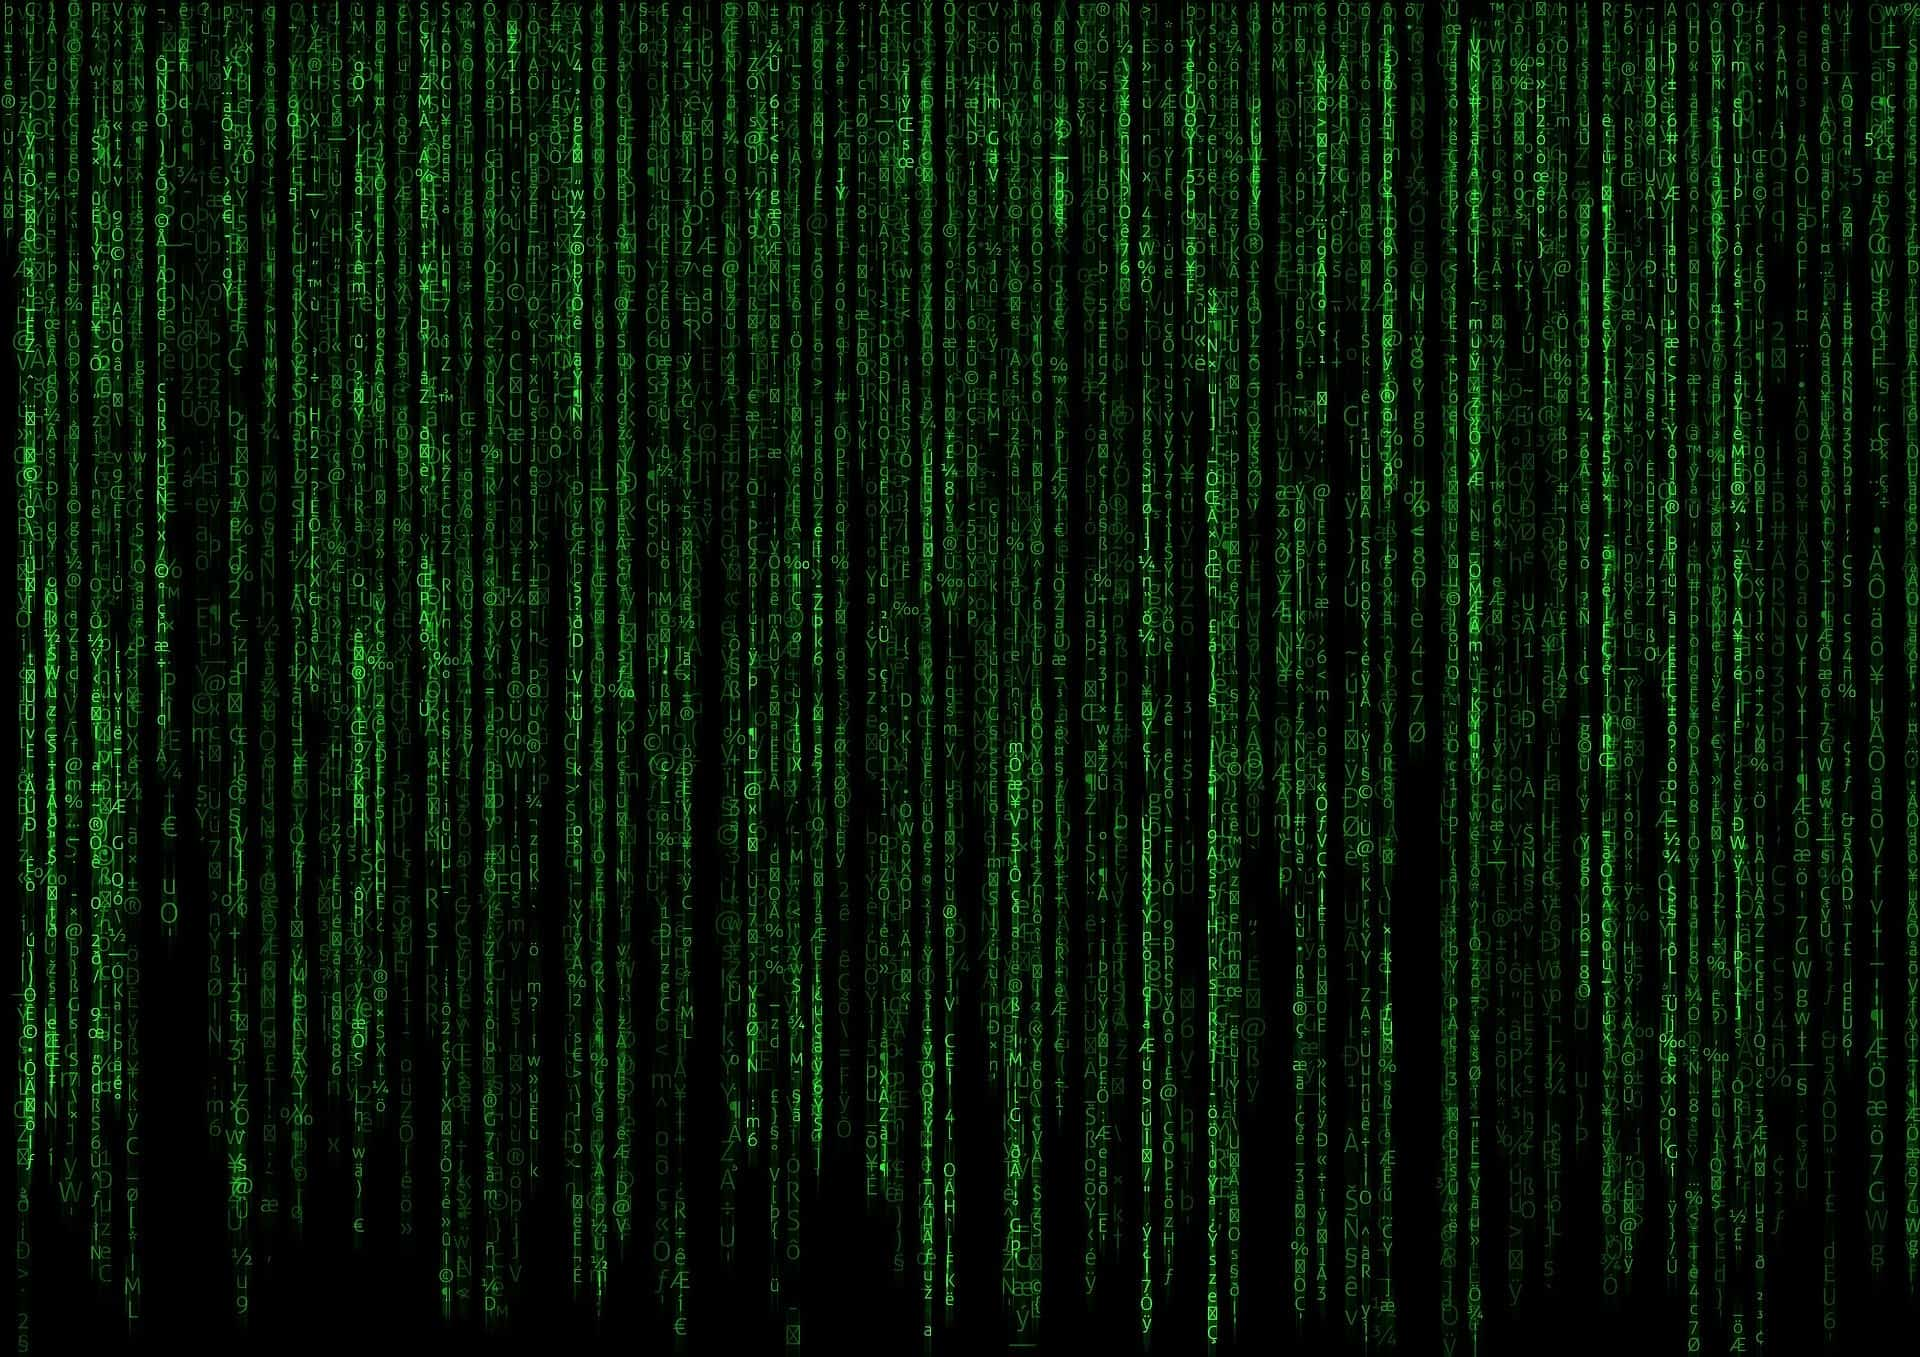 Green data cascading down the screen, like the matrix